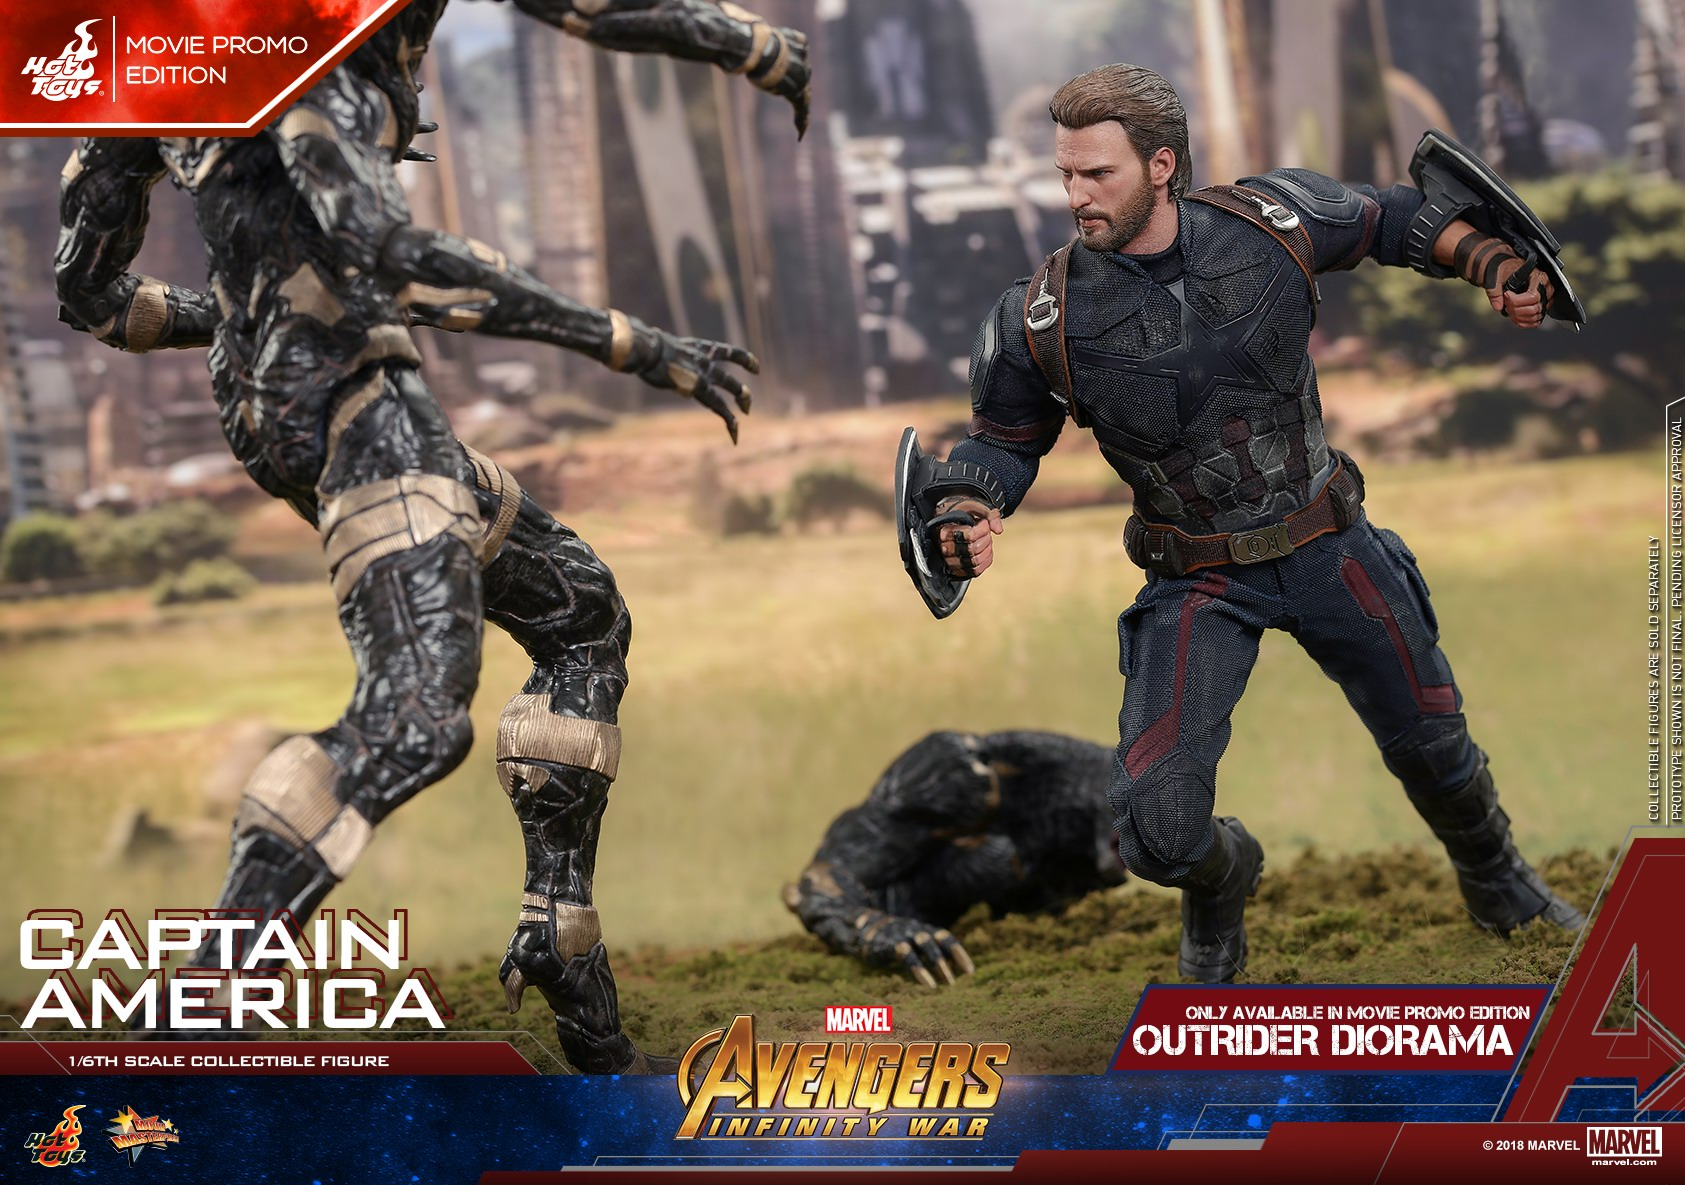 Hot Toys - AIW - Captain America collectible figure (Movie Promo)_PR10.jpg